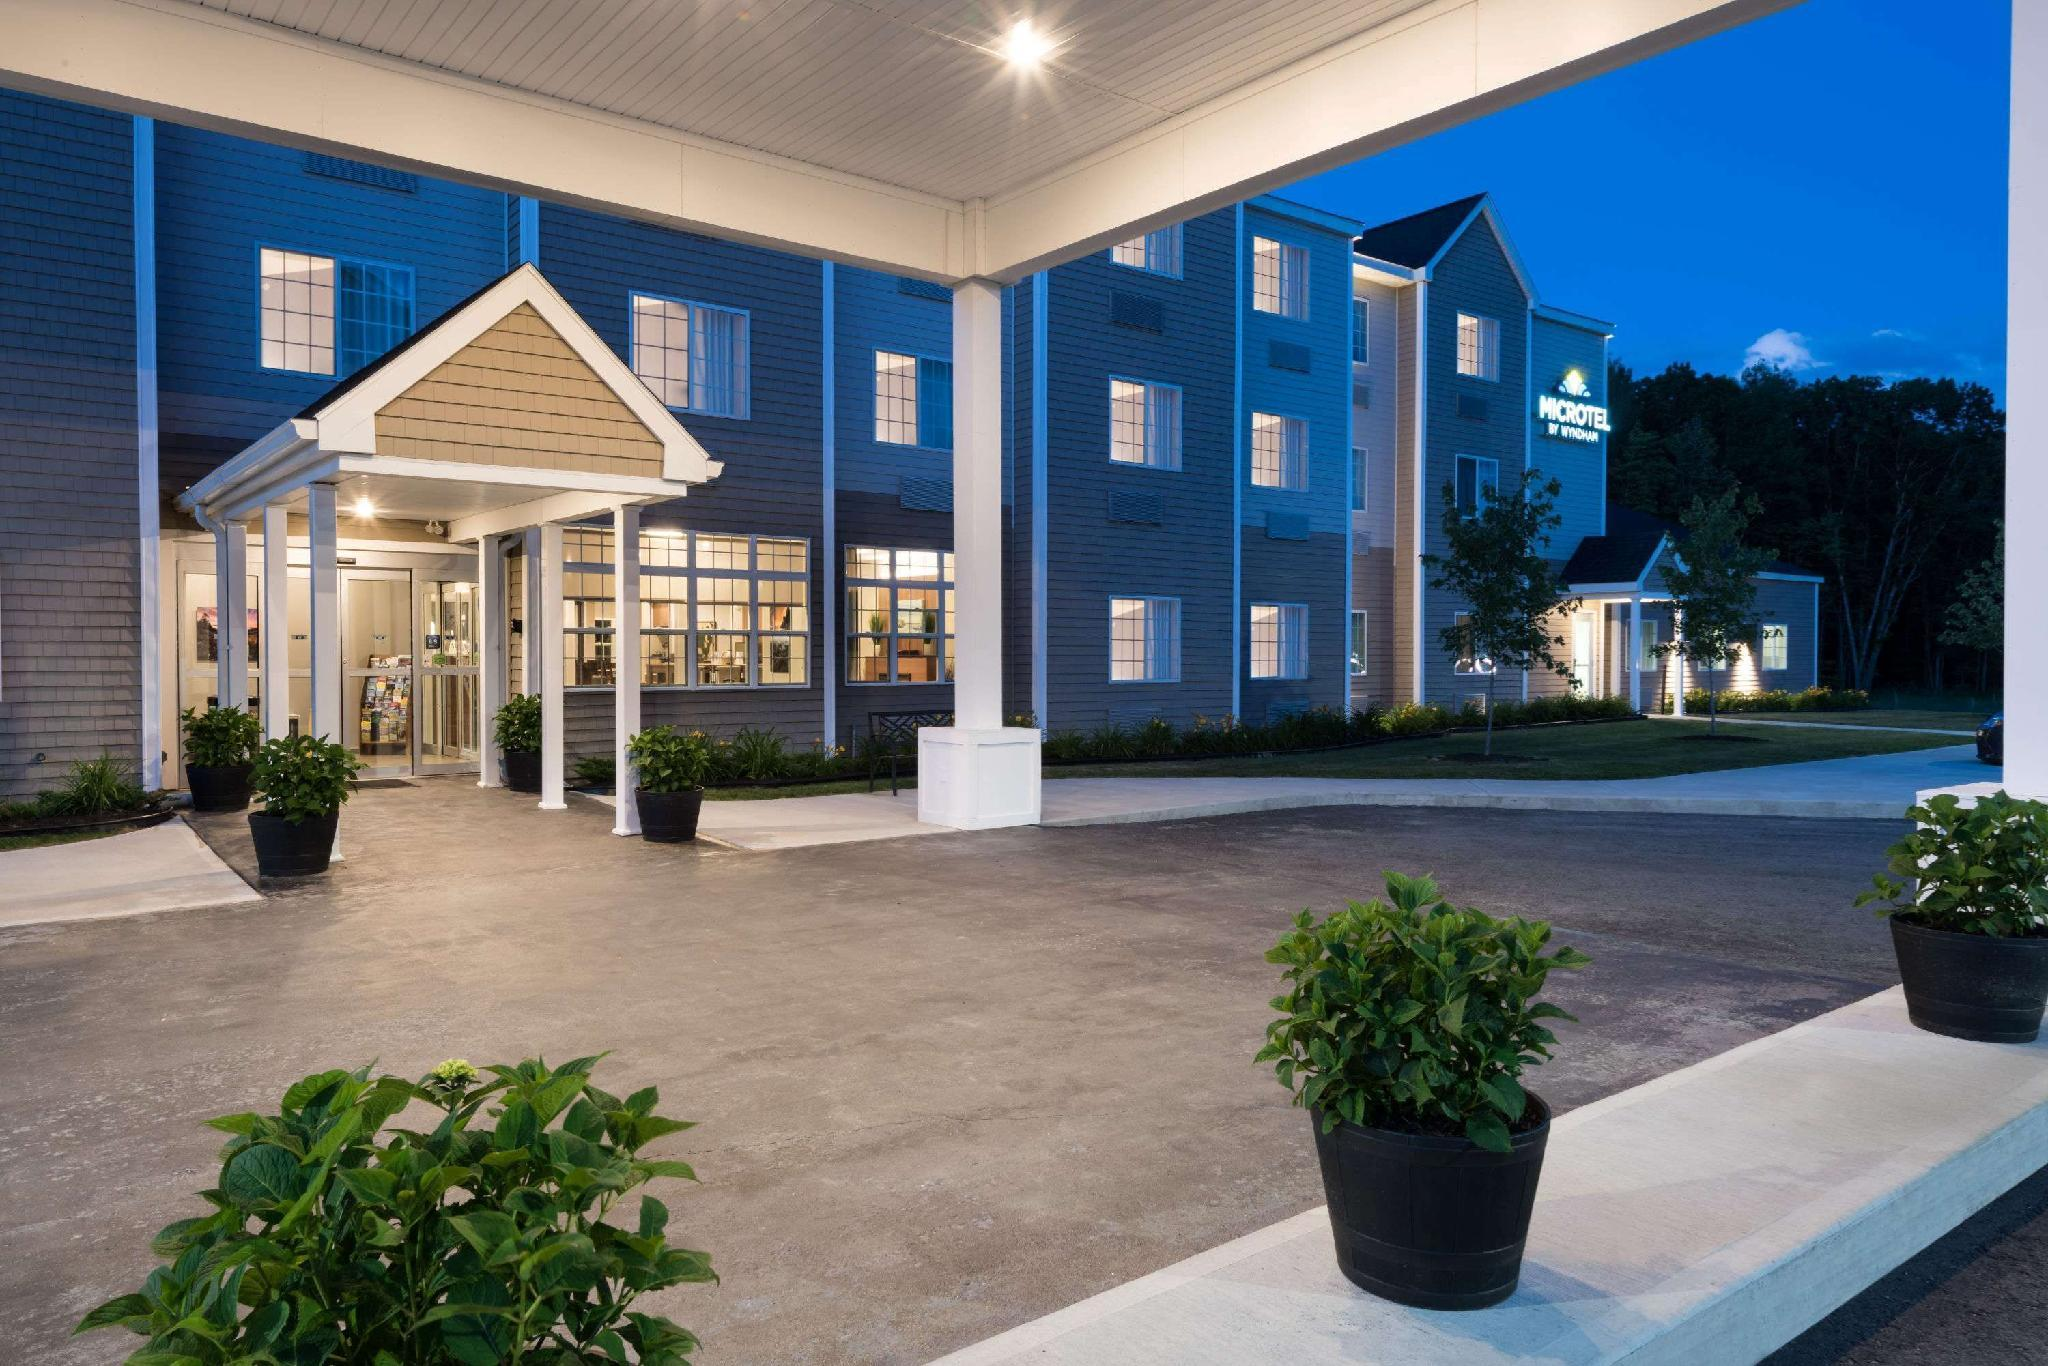 Microtel Inn And Suites By Wyndham Windham